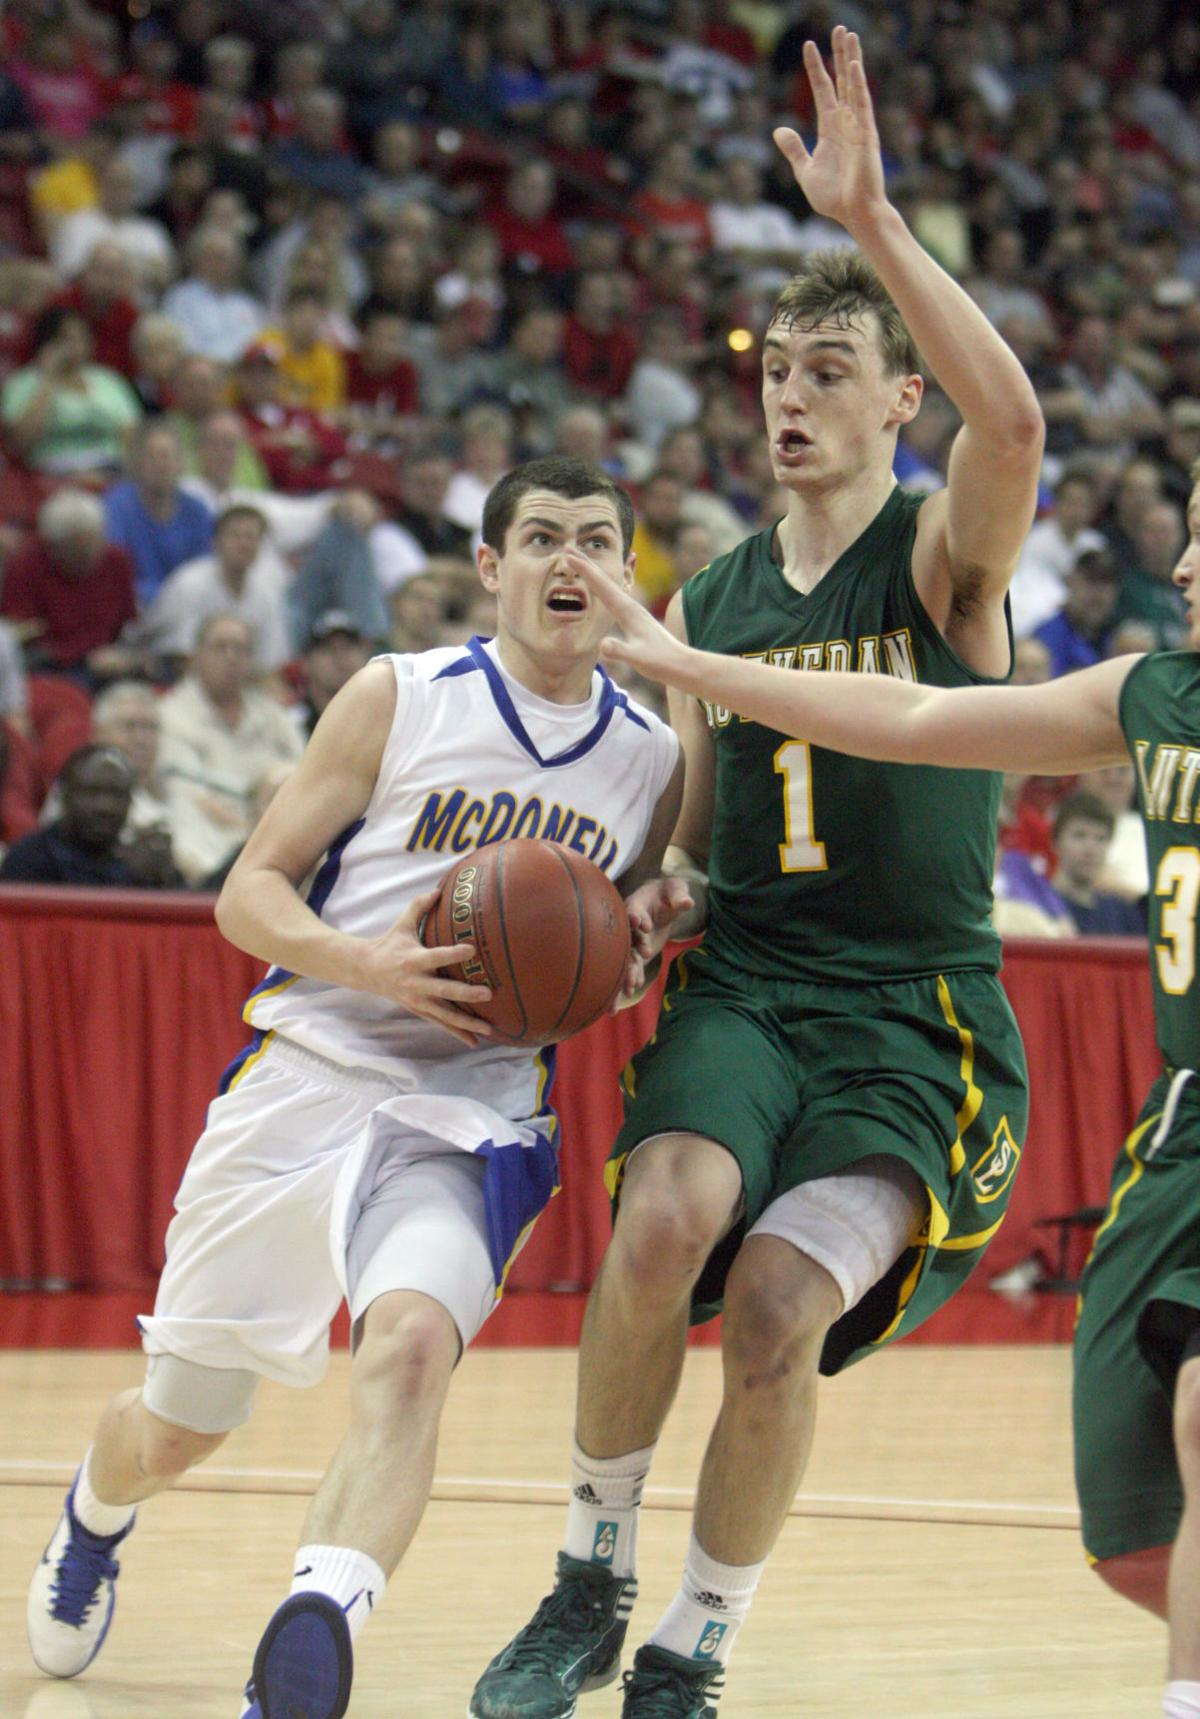 WIAA Division 5 Boys Basketball State Semifinal Sheboygan Area Lutheran v. McDonell 3-15-12